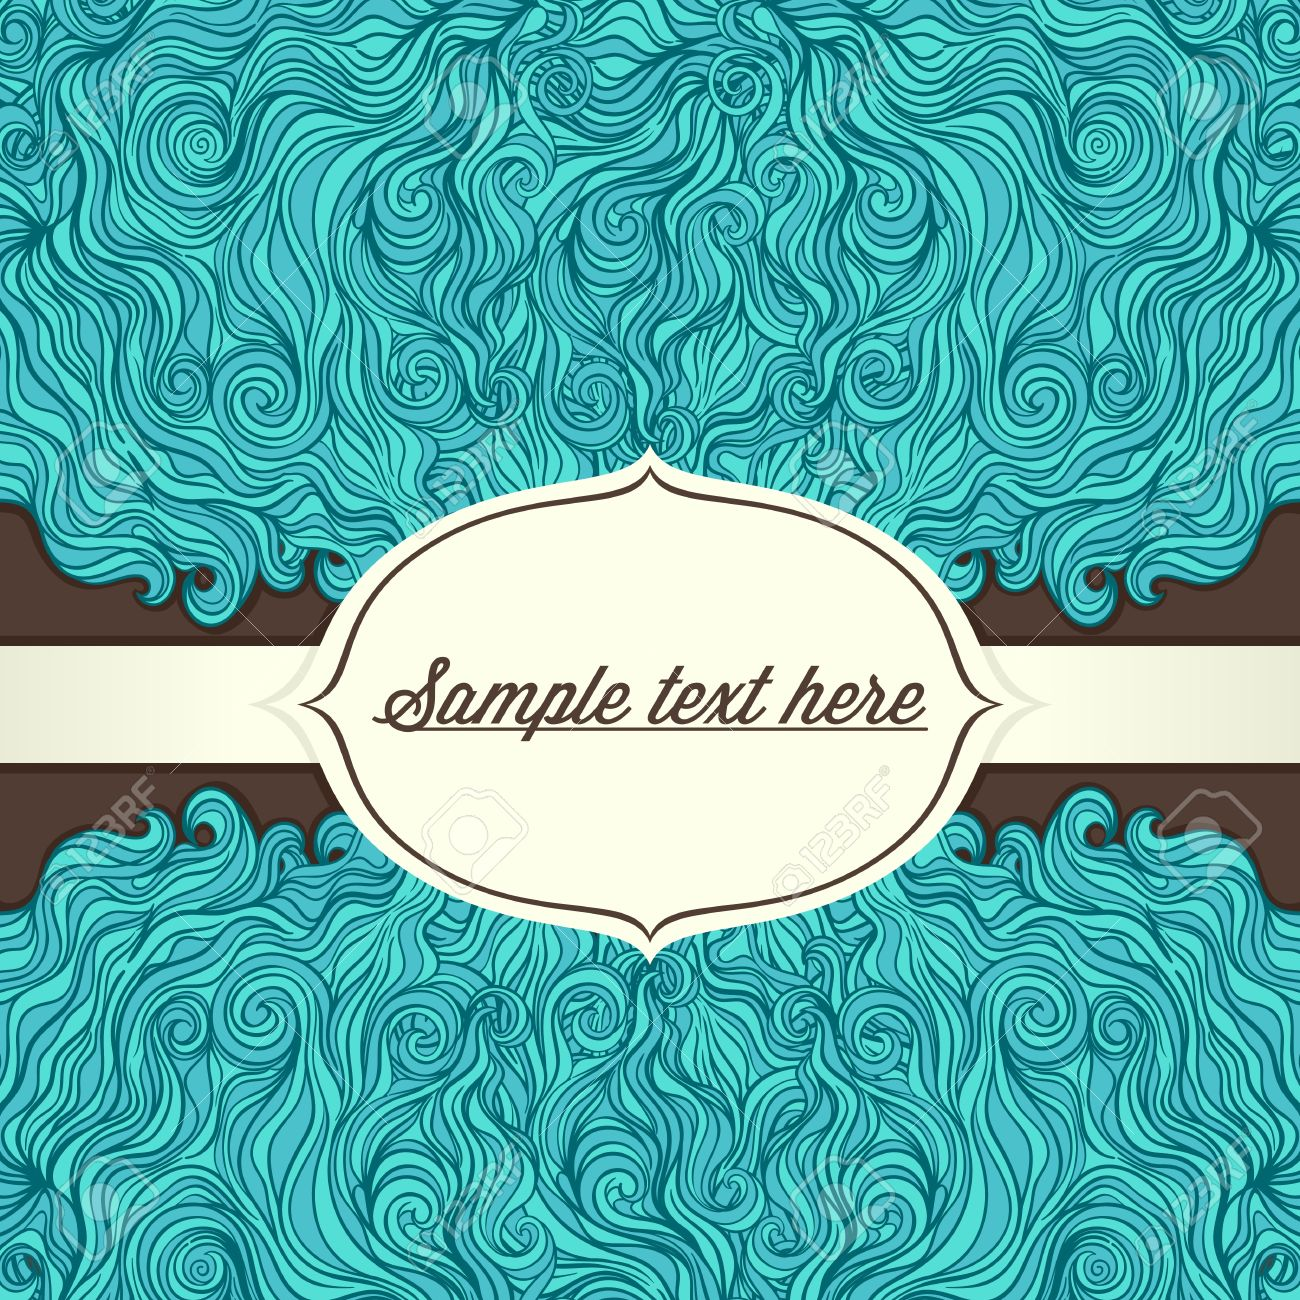 Turquoise Frame With Place For Text Pattern On Brown Background.